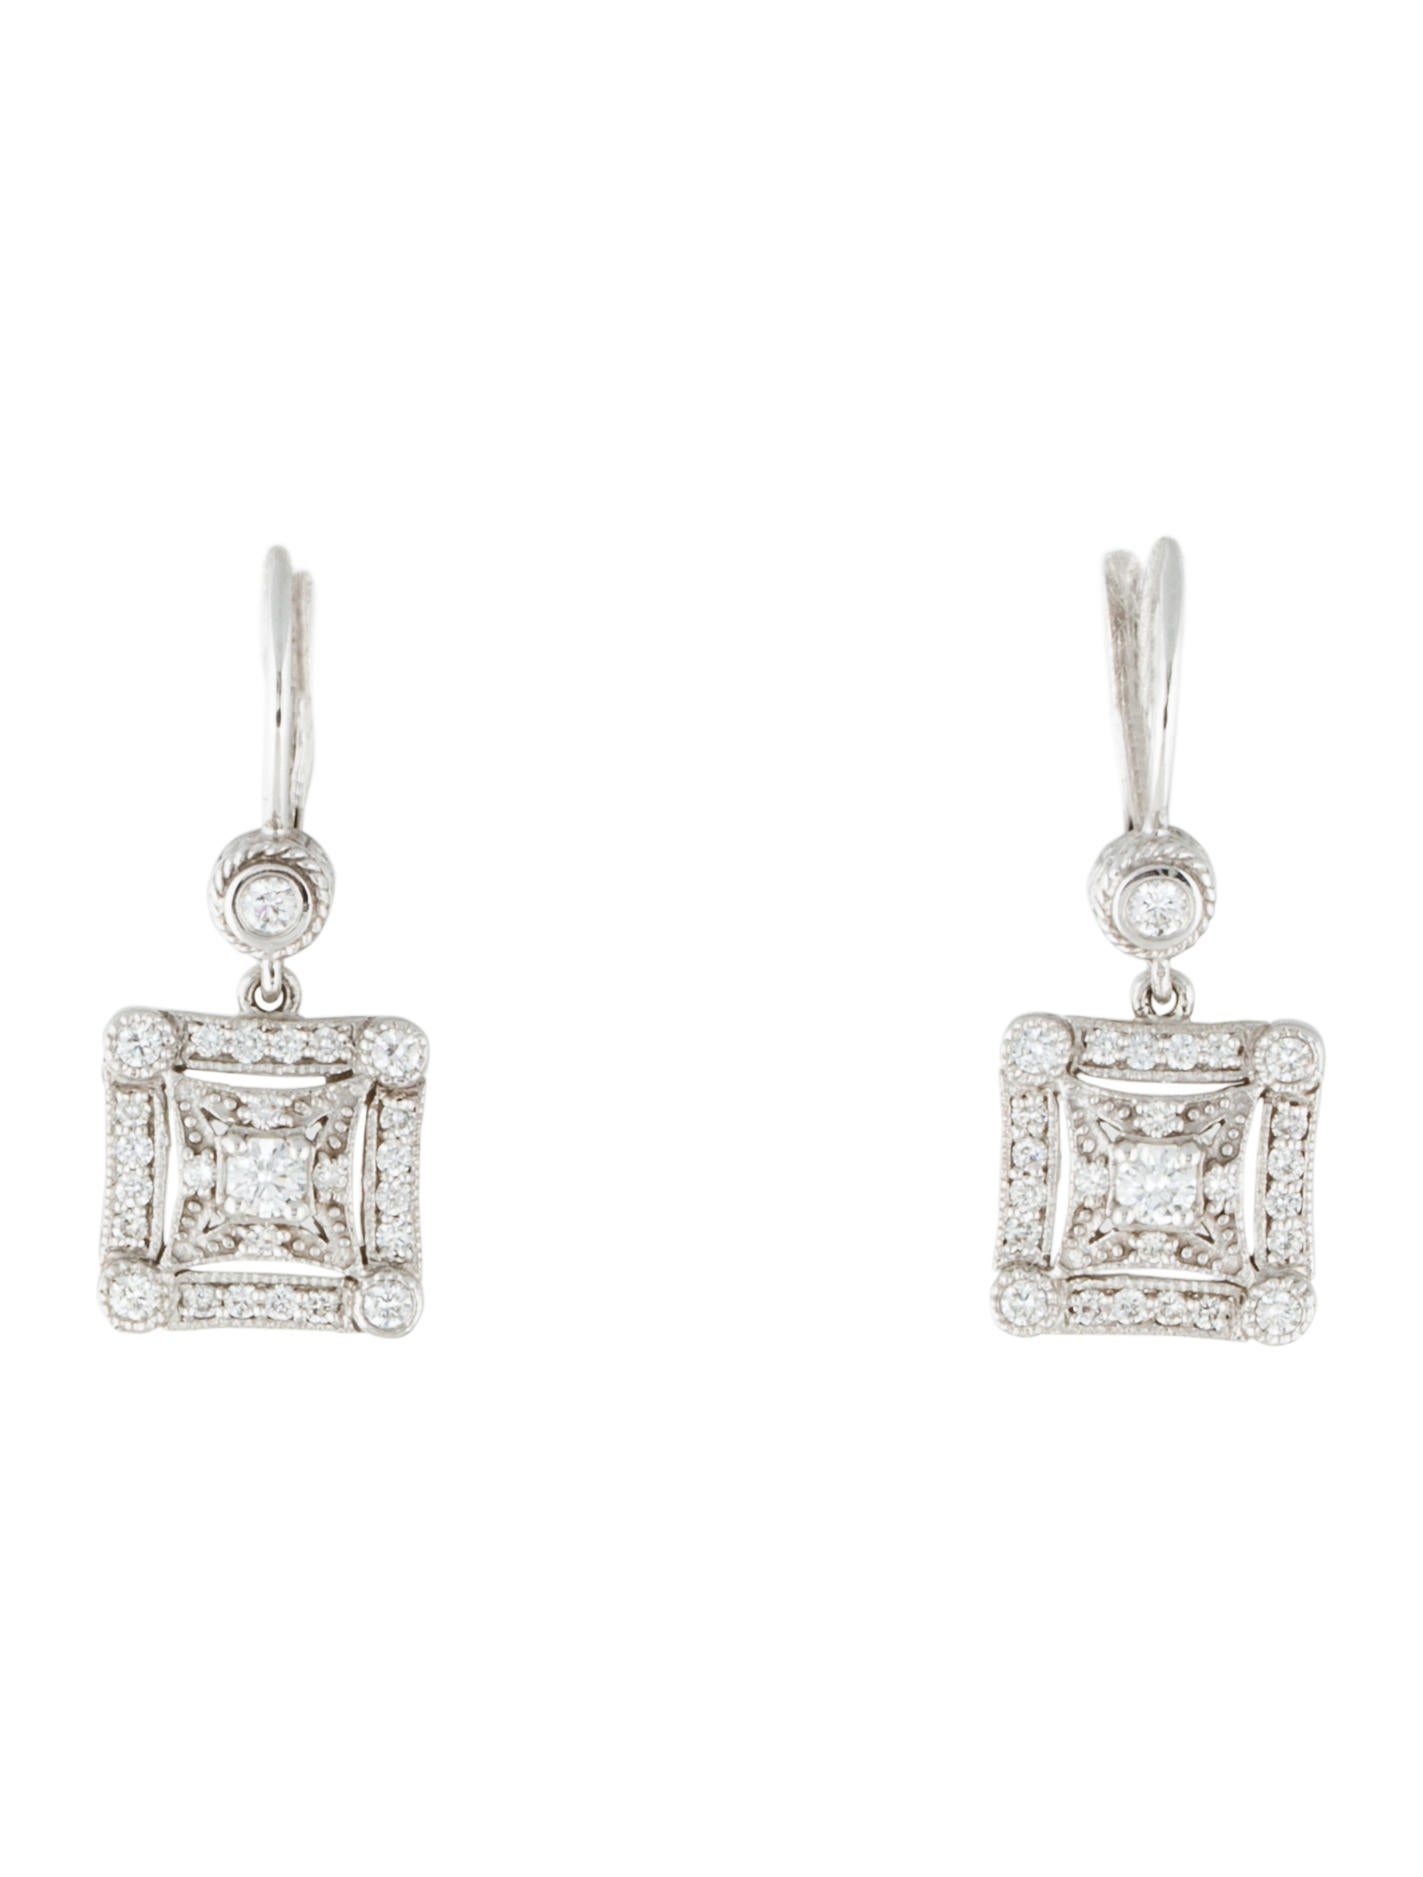 penny preville 18k square deco diamond drop earrings earrings ppv20139 the realreal. Black Bedroom Furniture Sets. Home Design Ideas